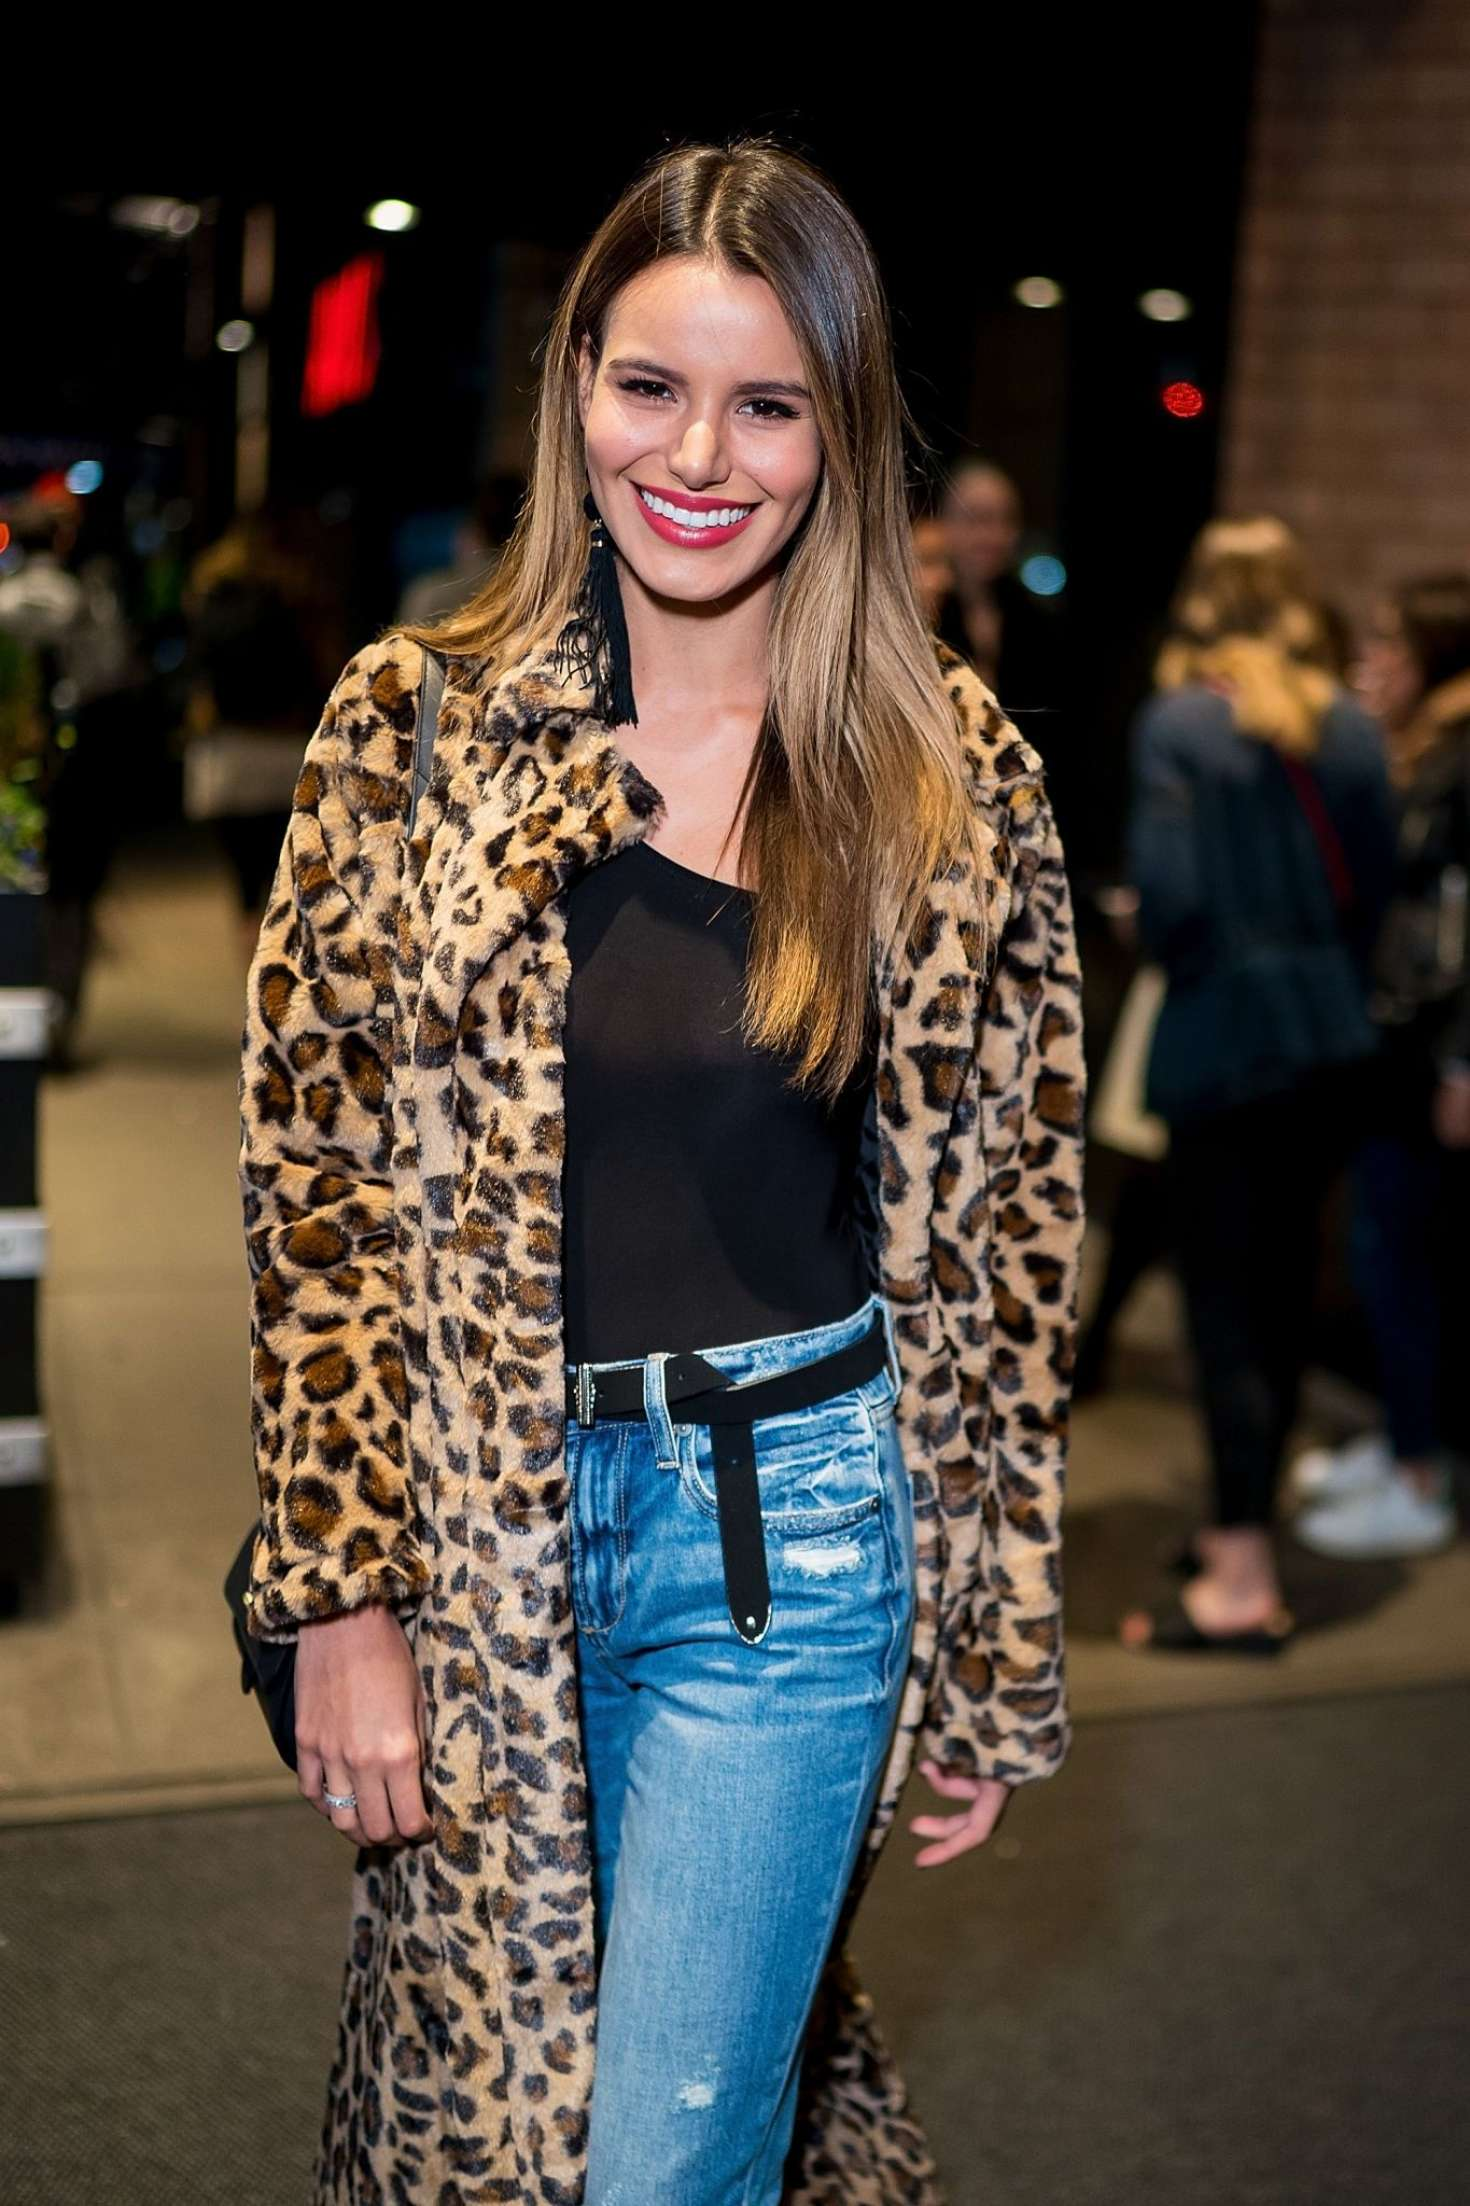 Madison Reed in Animal Print Coat – Leaving her Hotel in New York